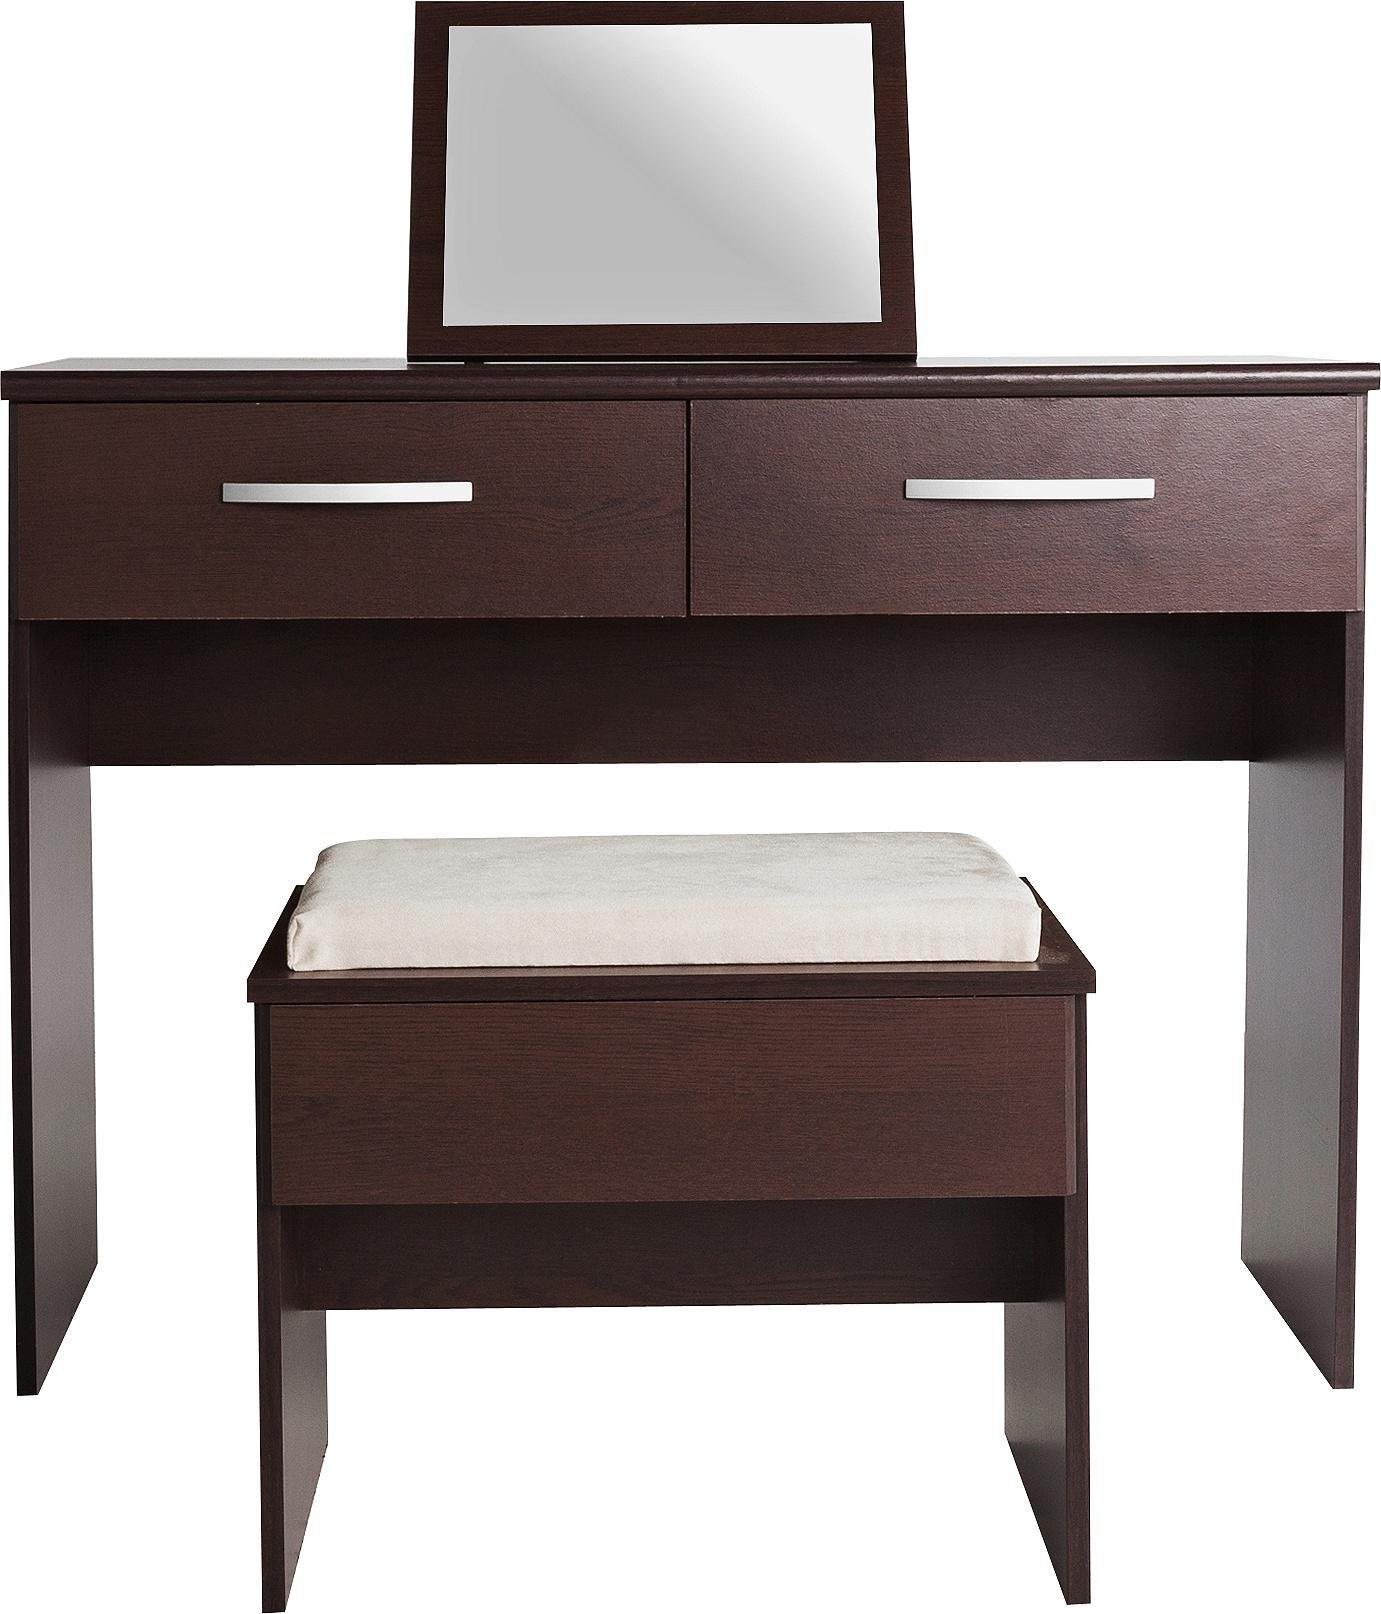 Collection new hallingford dressing table wenge effect - Dressing wenge ...